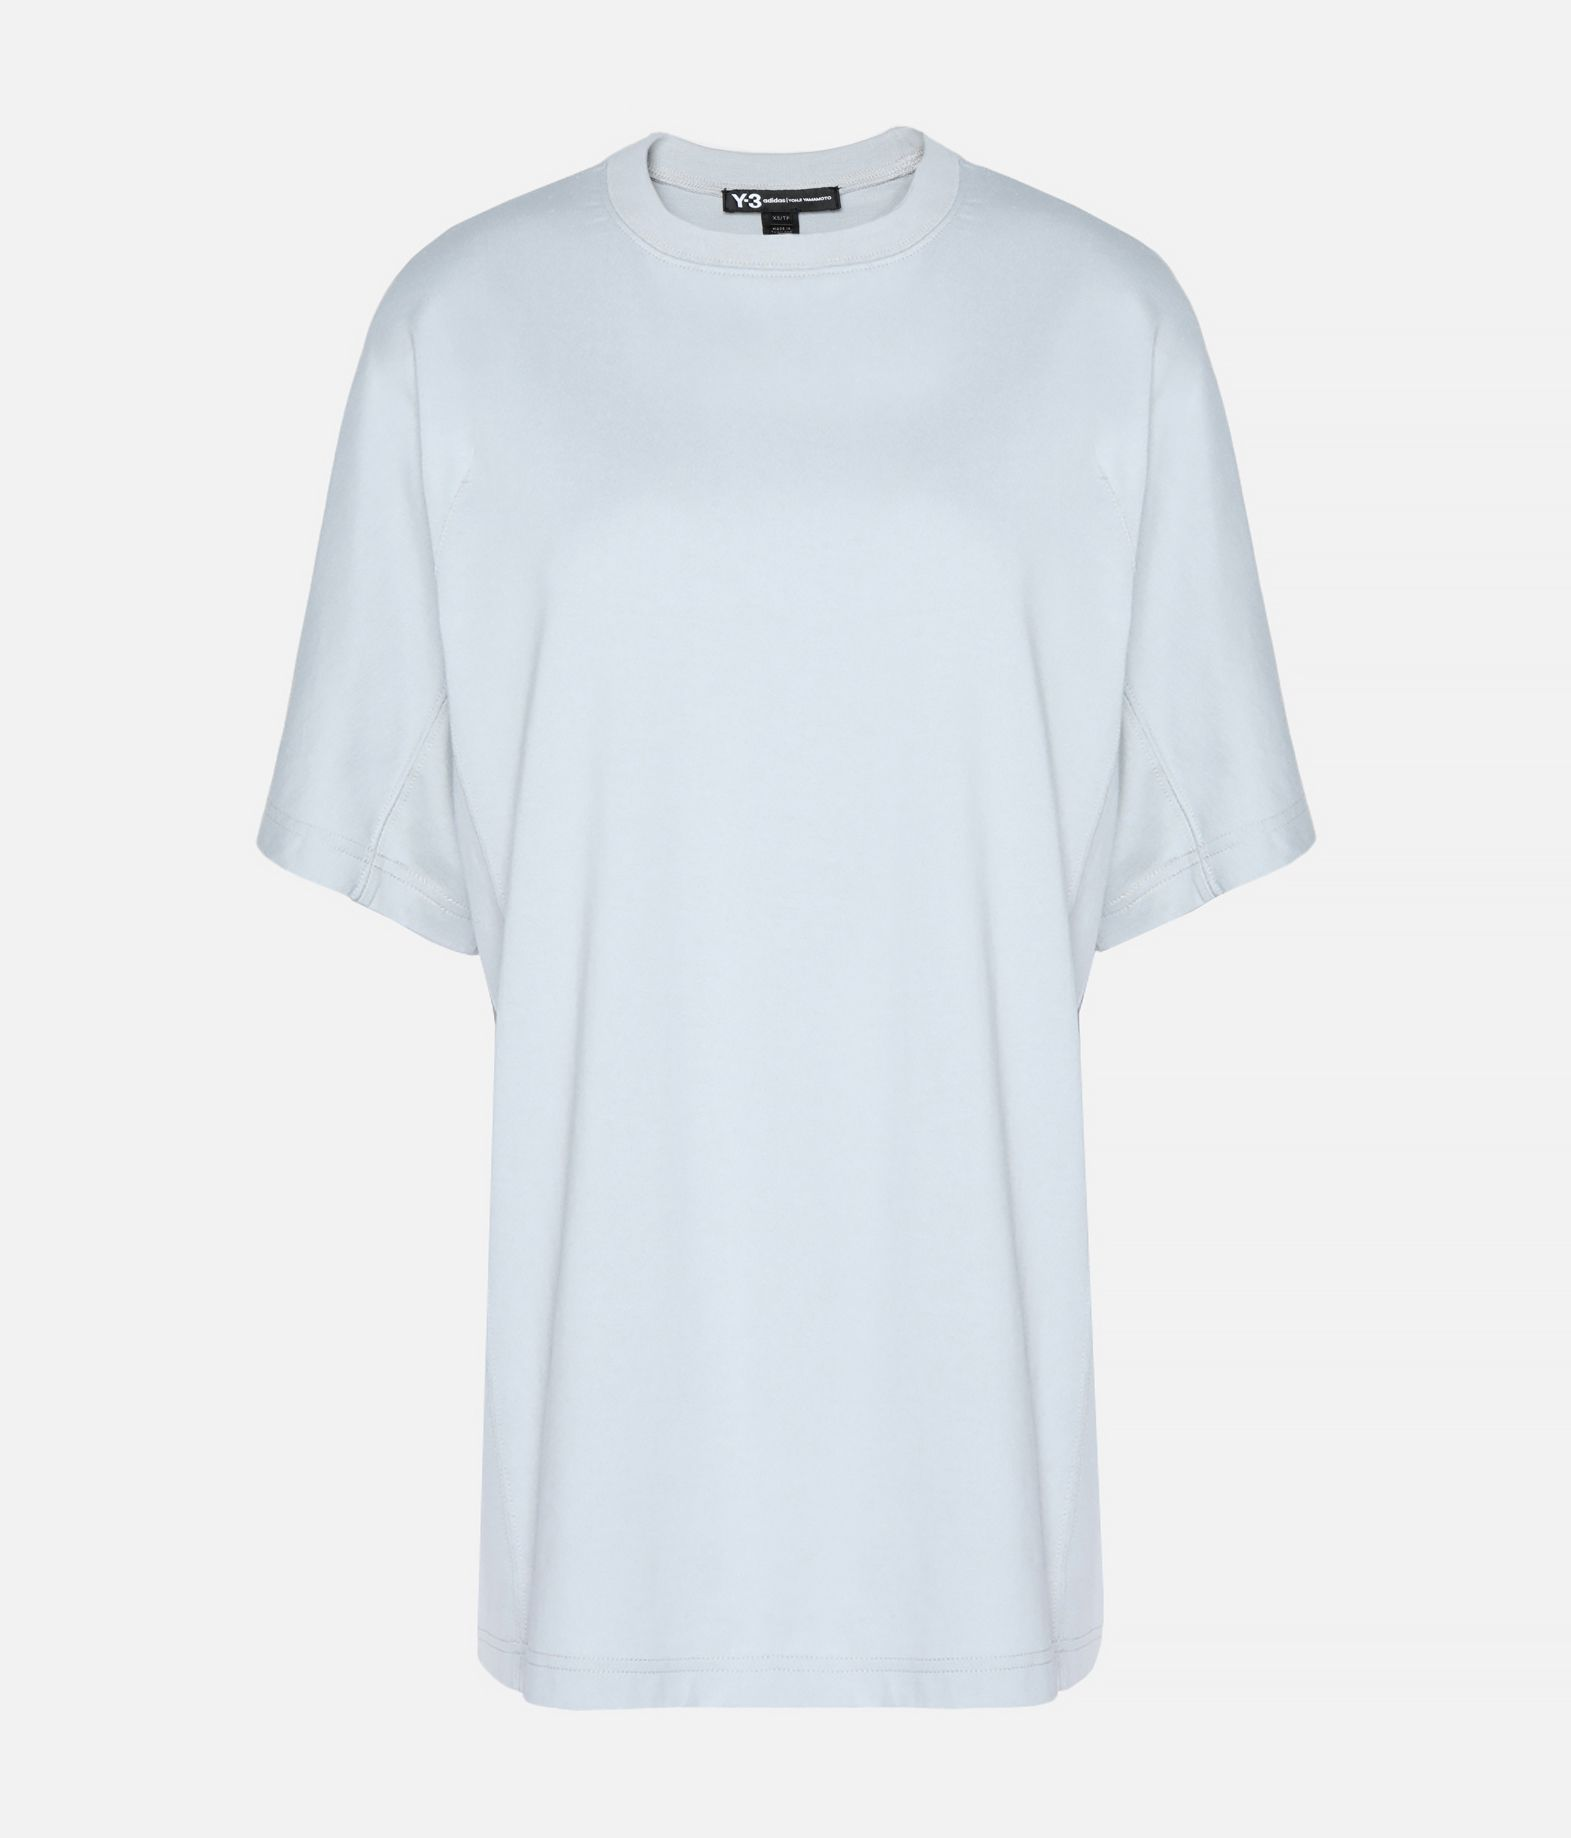 Y-3 Y-3 Classic Tee Short sleeve t-shirt Woman f